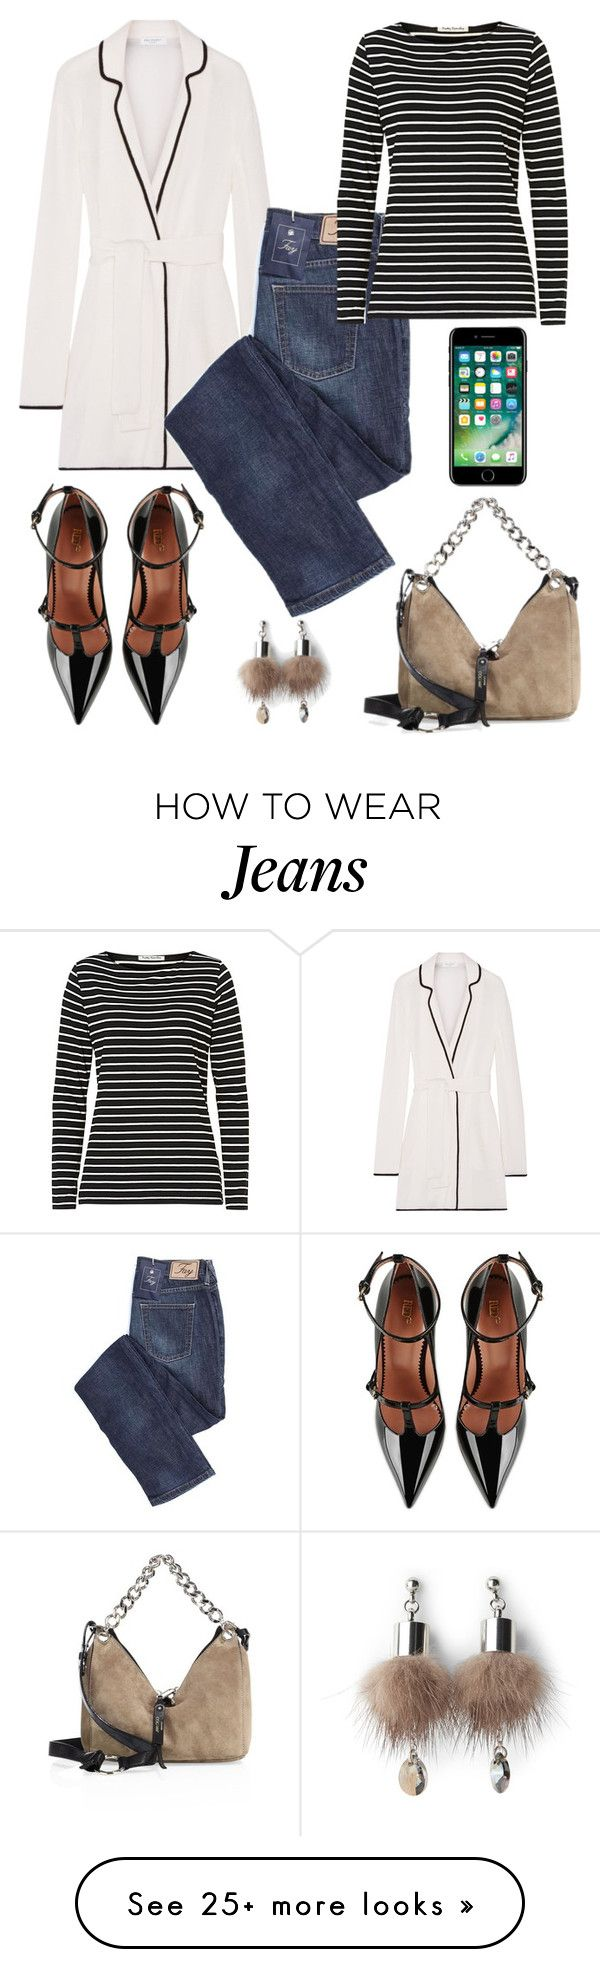 """Keren."" by schenonek on Polyvore featuring Equipment, Jimmy Choo, Betty Barclay, RED Valentino and Simons"